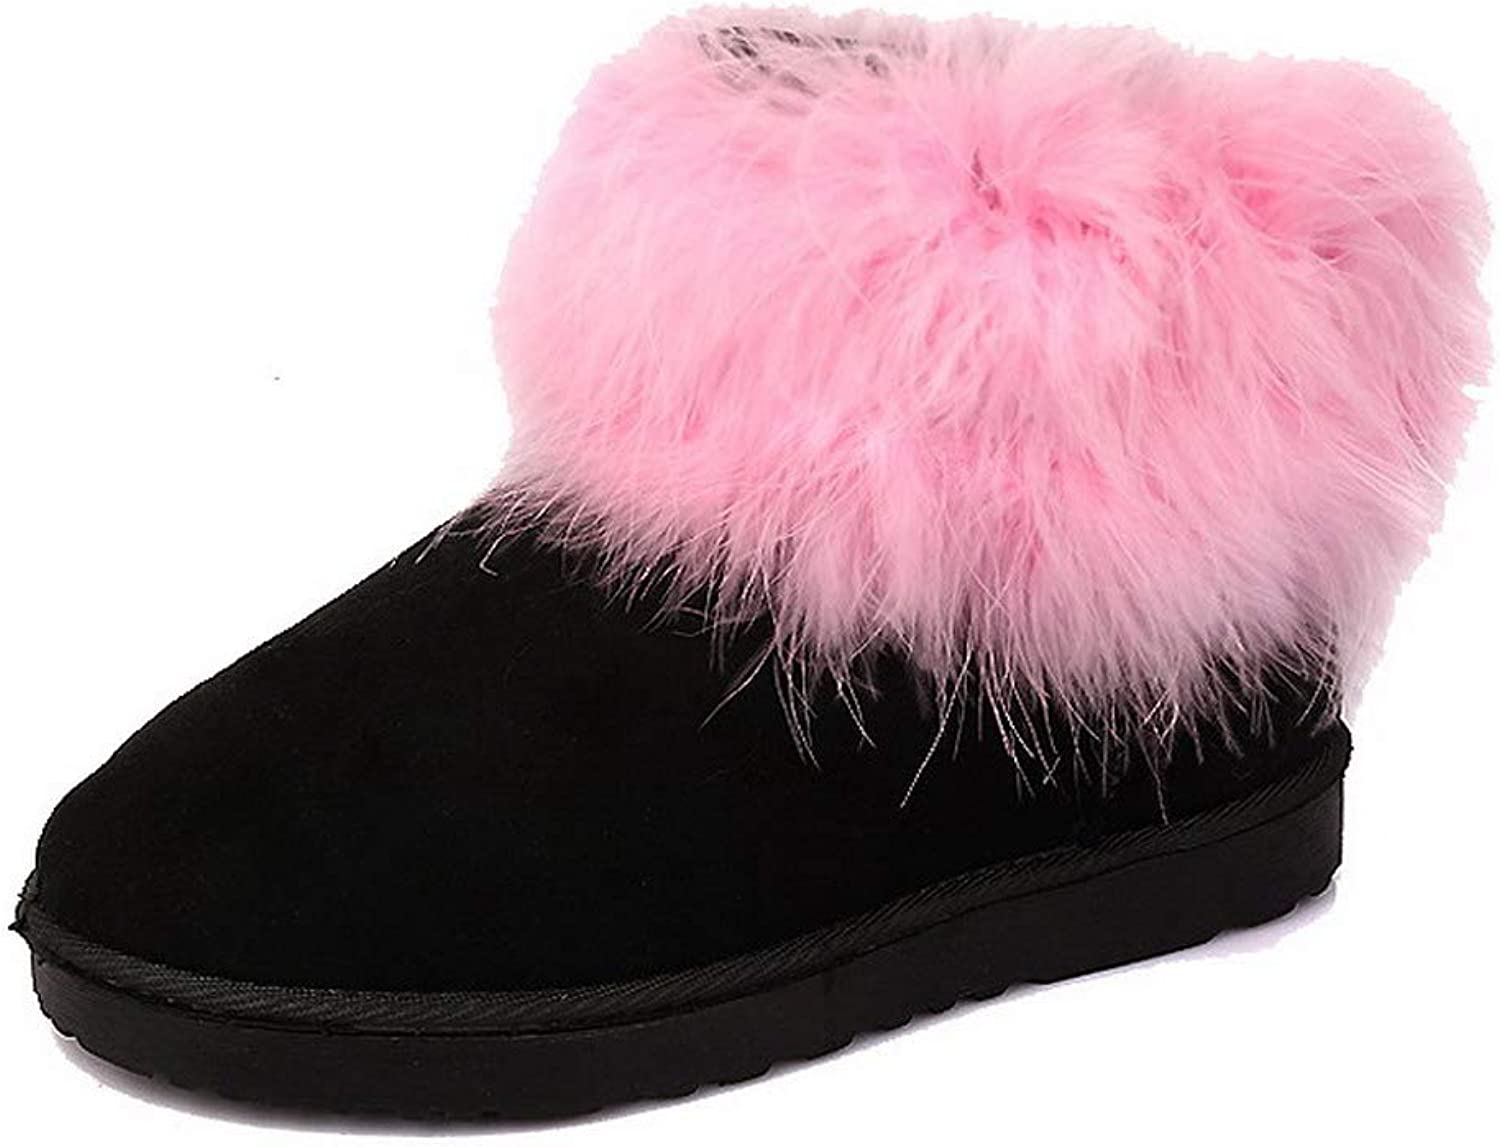 AllhqFashion Women's Pull-On Round-Toe Low-Heels Frosted Low-Top Boots, FBUXC039238